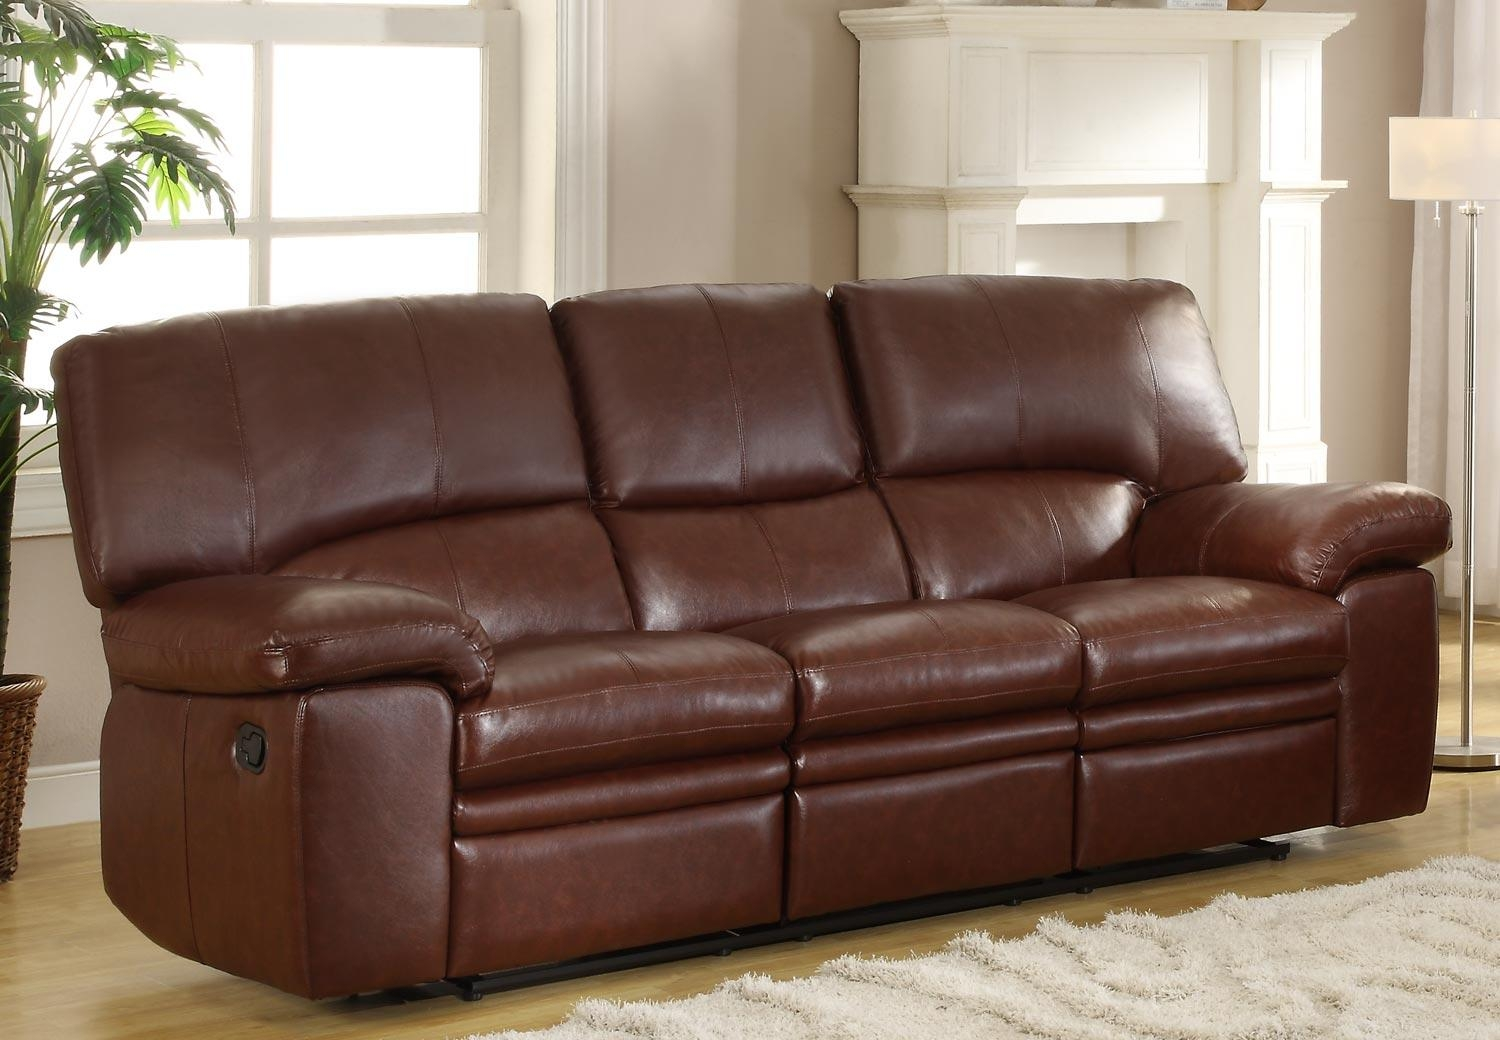 Sofas Center : Blue Leather Recliner Sectionalfa Violinofaleather With Berkline Leather Sofas (View 13 of 20)